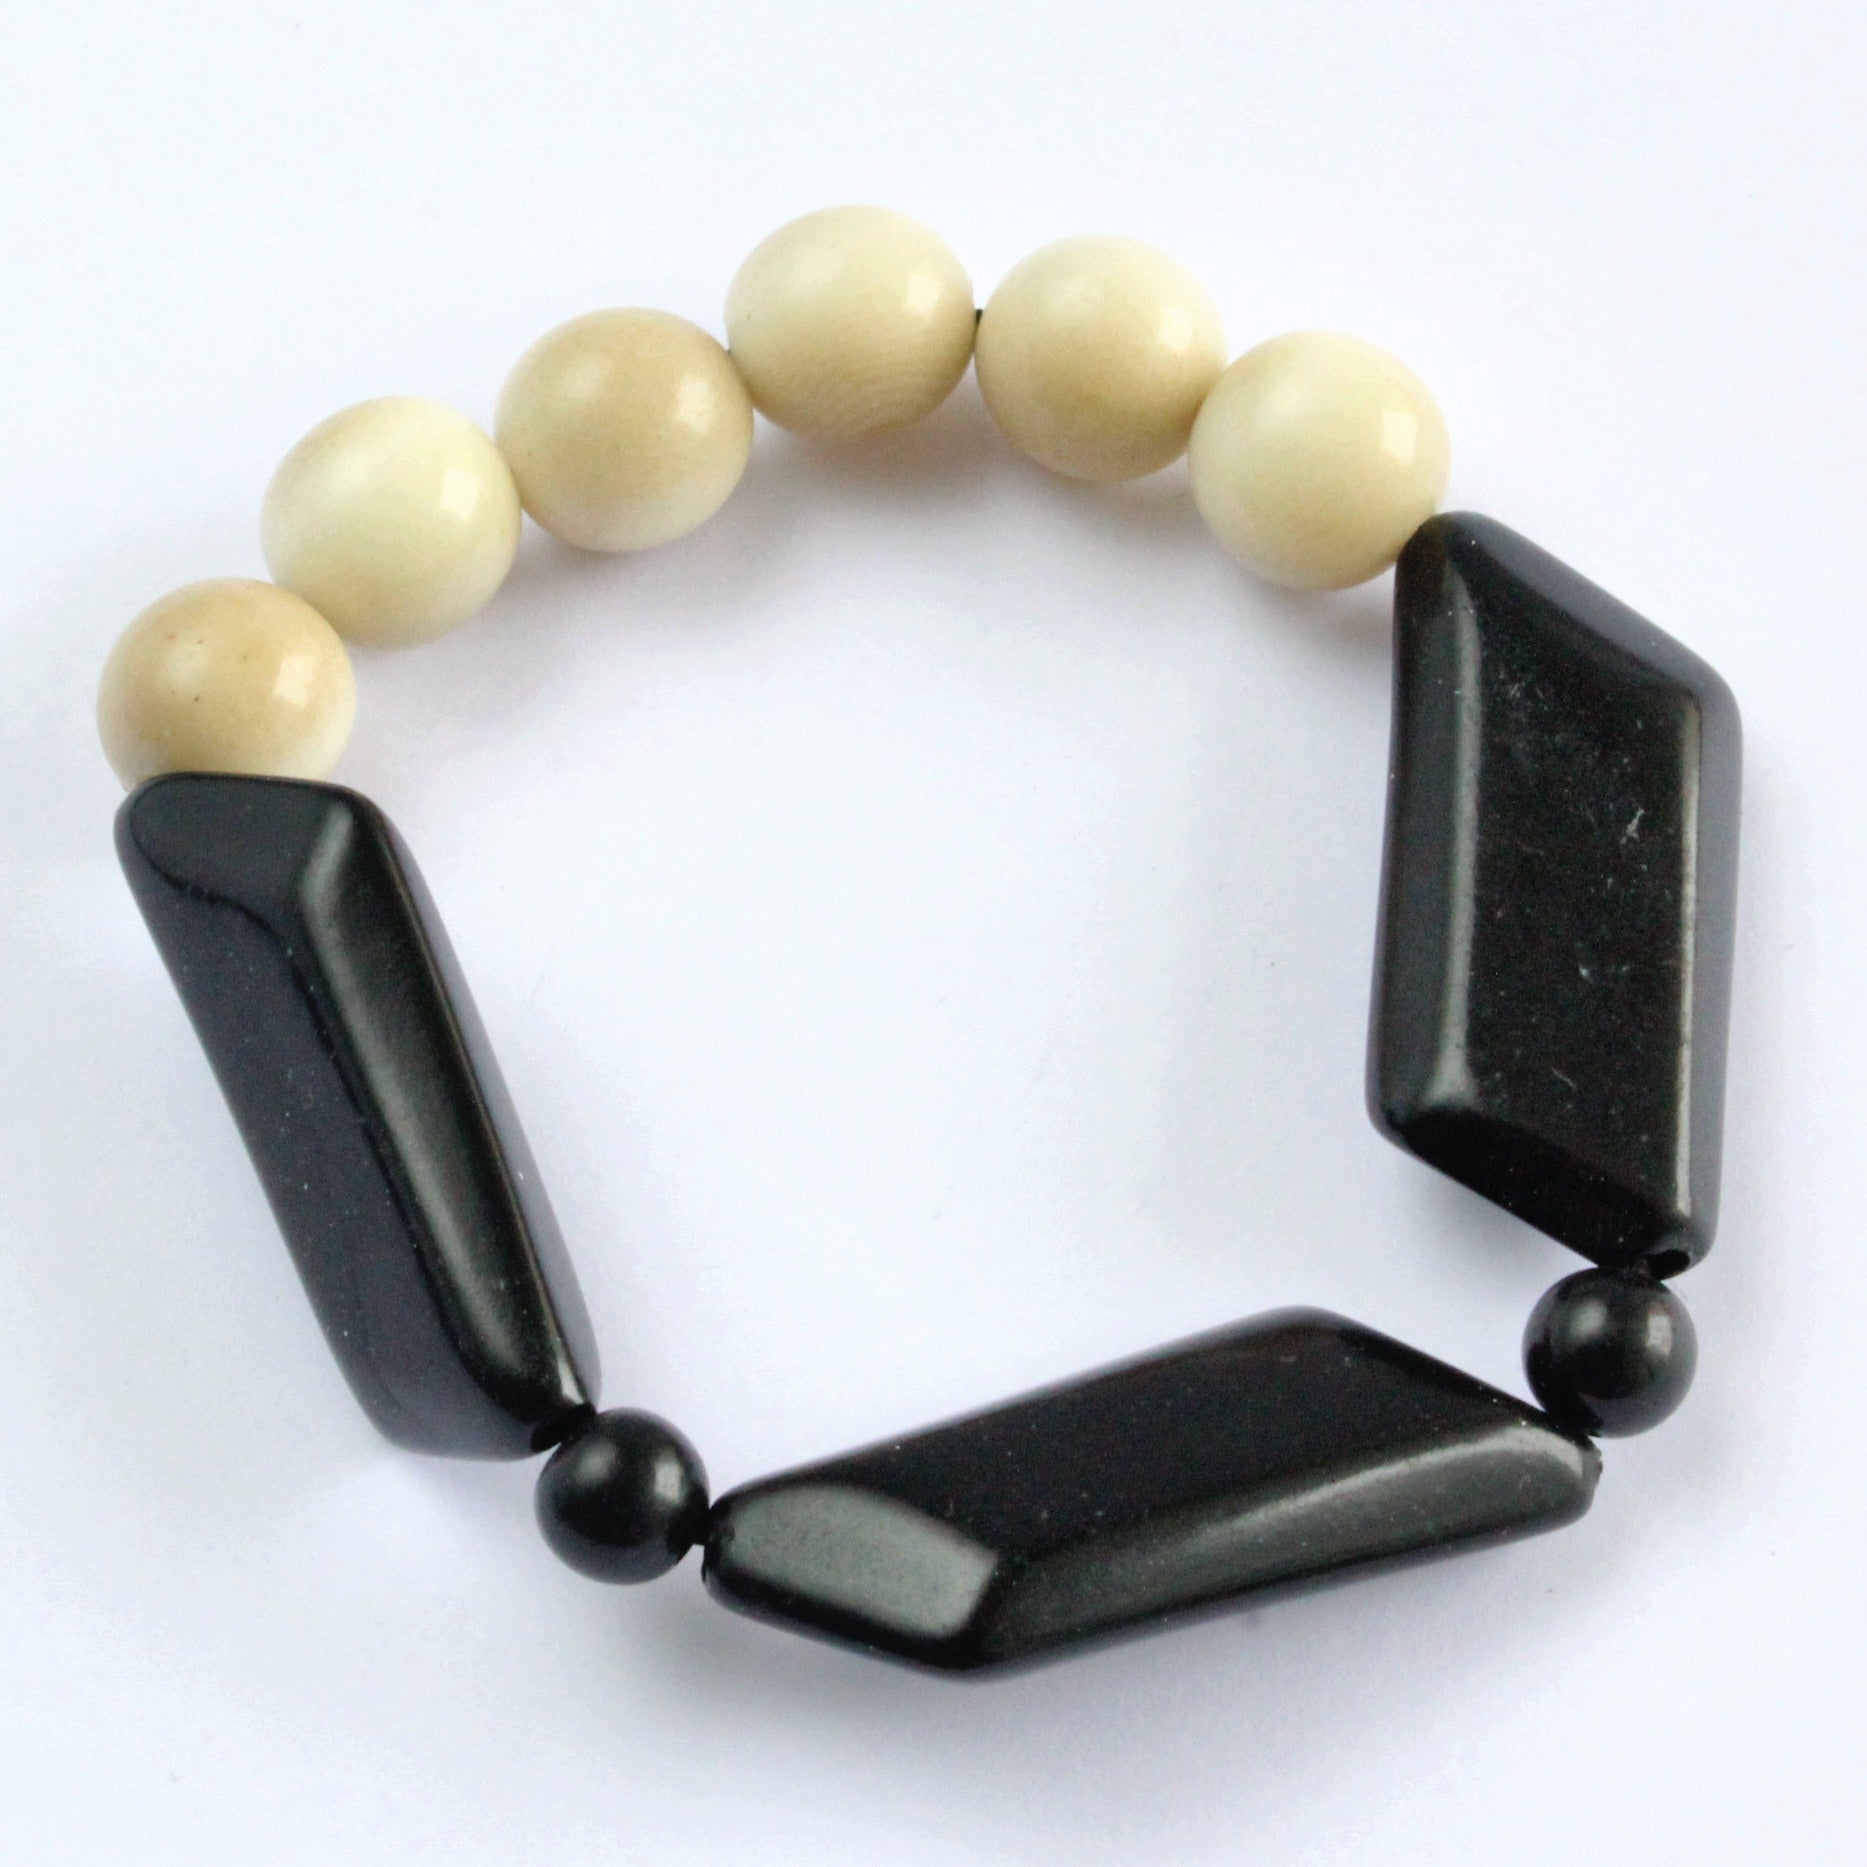 Handmade bracelet, tagua nut, sustainable, black, white